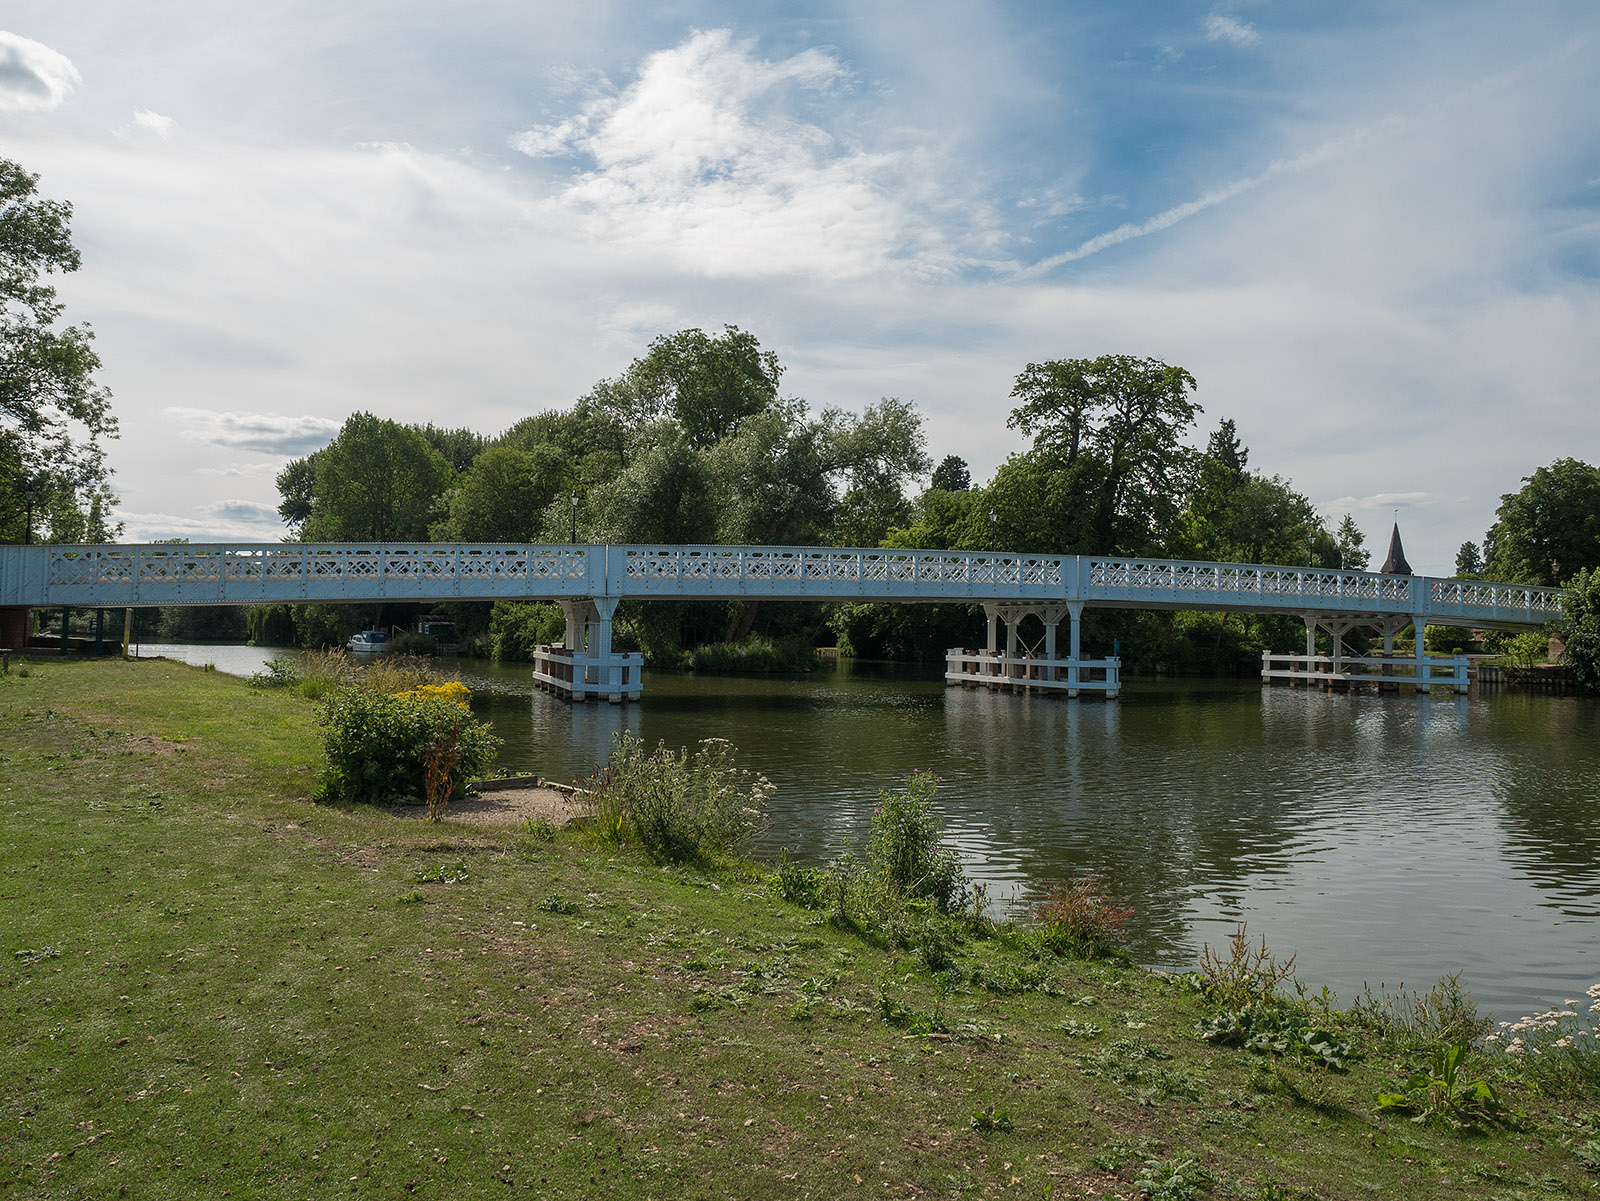 The bridge at Pangbourne